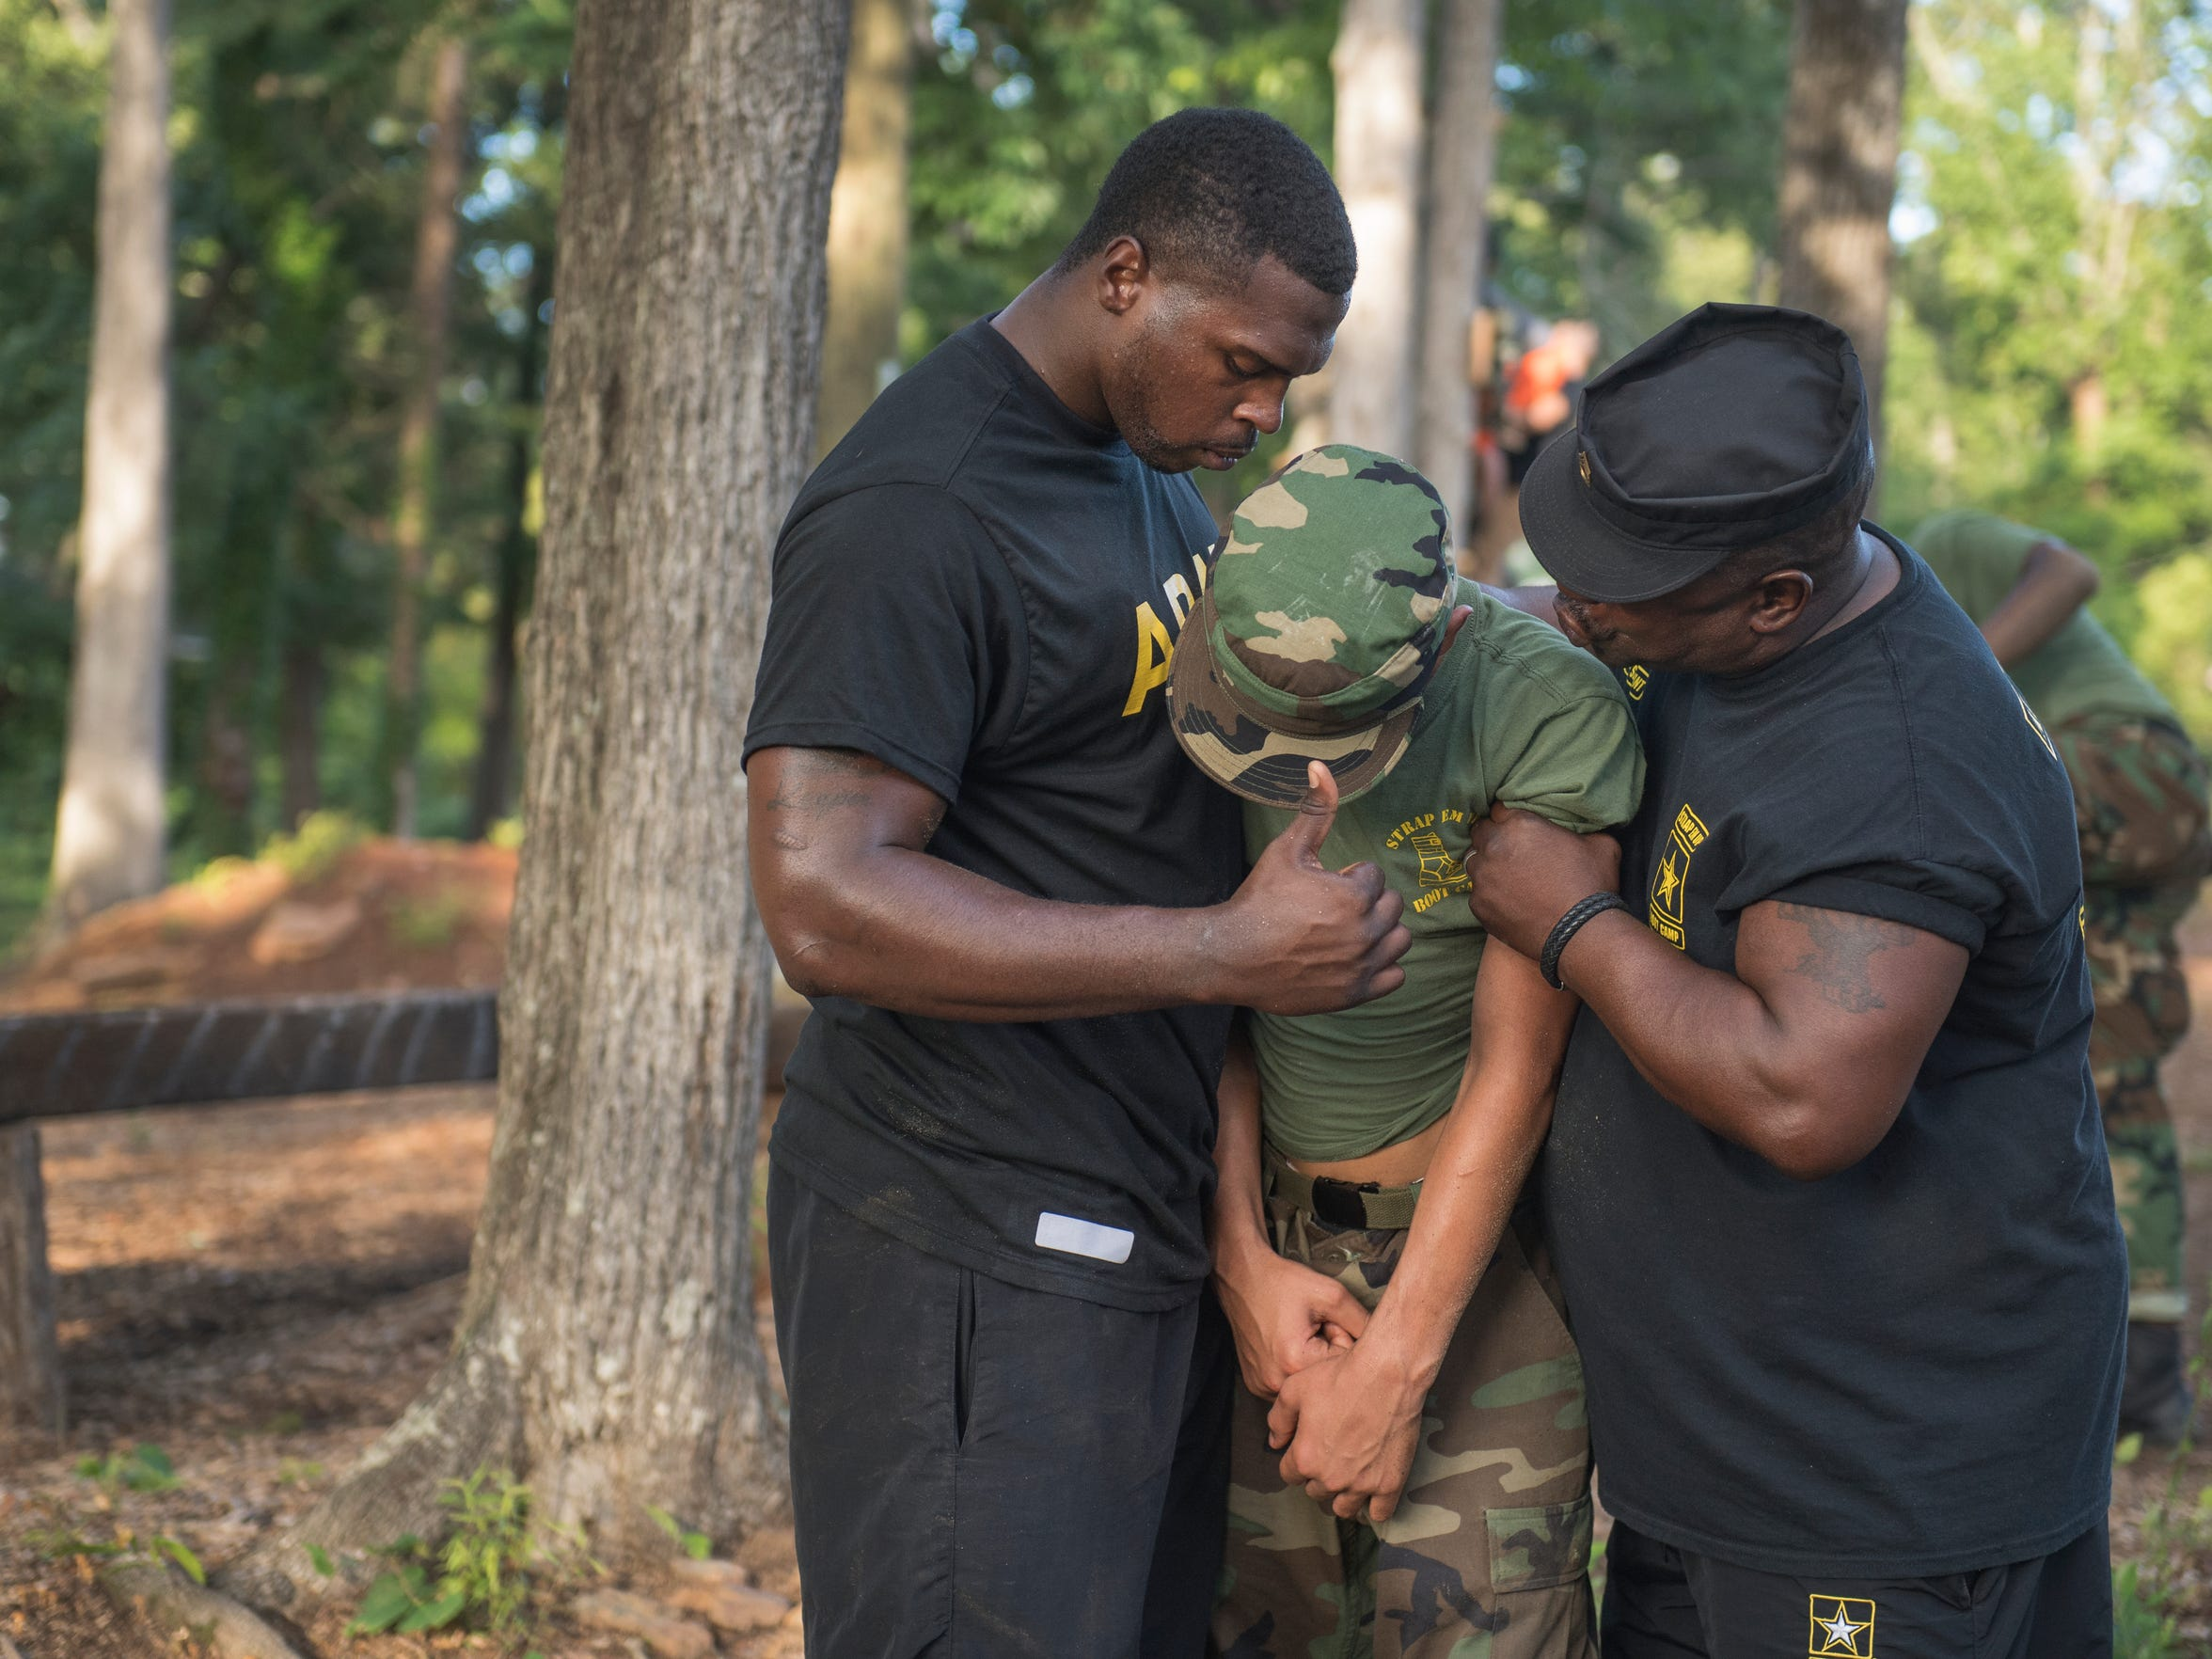 Martin Gabriel, 14, is held up by Sergeant Kenneth Pitts and Drill Sergeant Steven Sullivan as he breaks down after doing push ups on Tuesday, May 22, 2018.